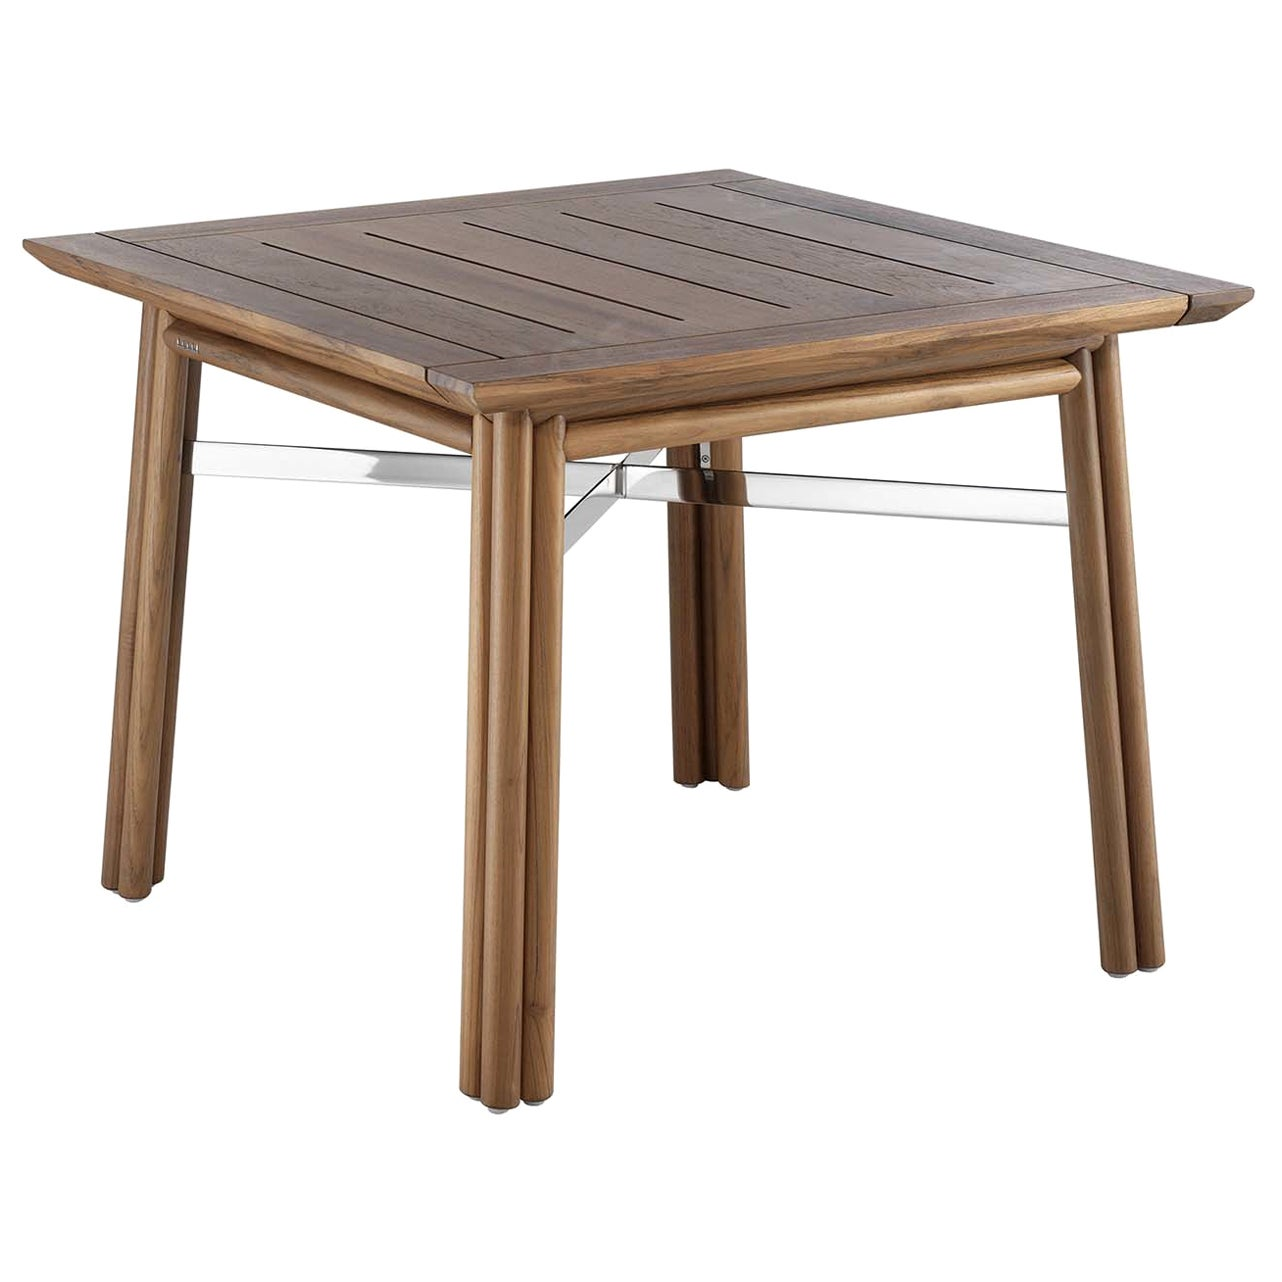 Maxim Square Table by Braid Outdoor